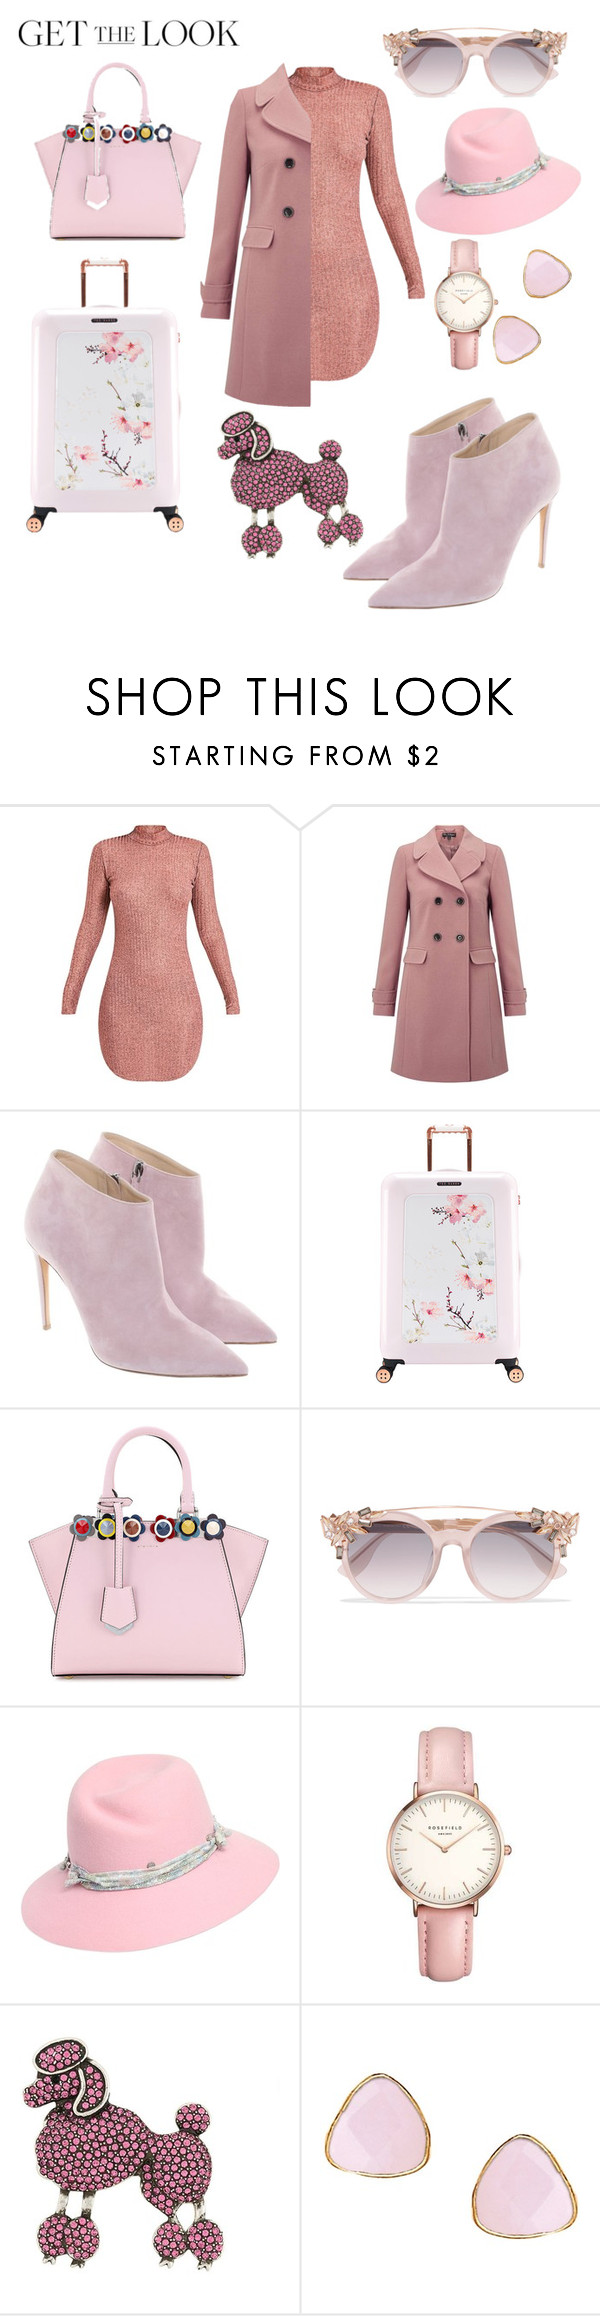 """""""Winter getaway"""" by putxzzahra ❤ liked on Polyvore featuring Miss Selfridge, Ralph Lauren, Ted Baker, Fendi, Jimmy Choo, Maison Michel, Topshop, Marc Jacobs and Ottoman Hands"""